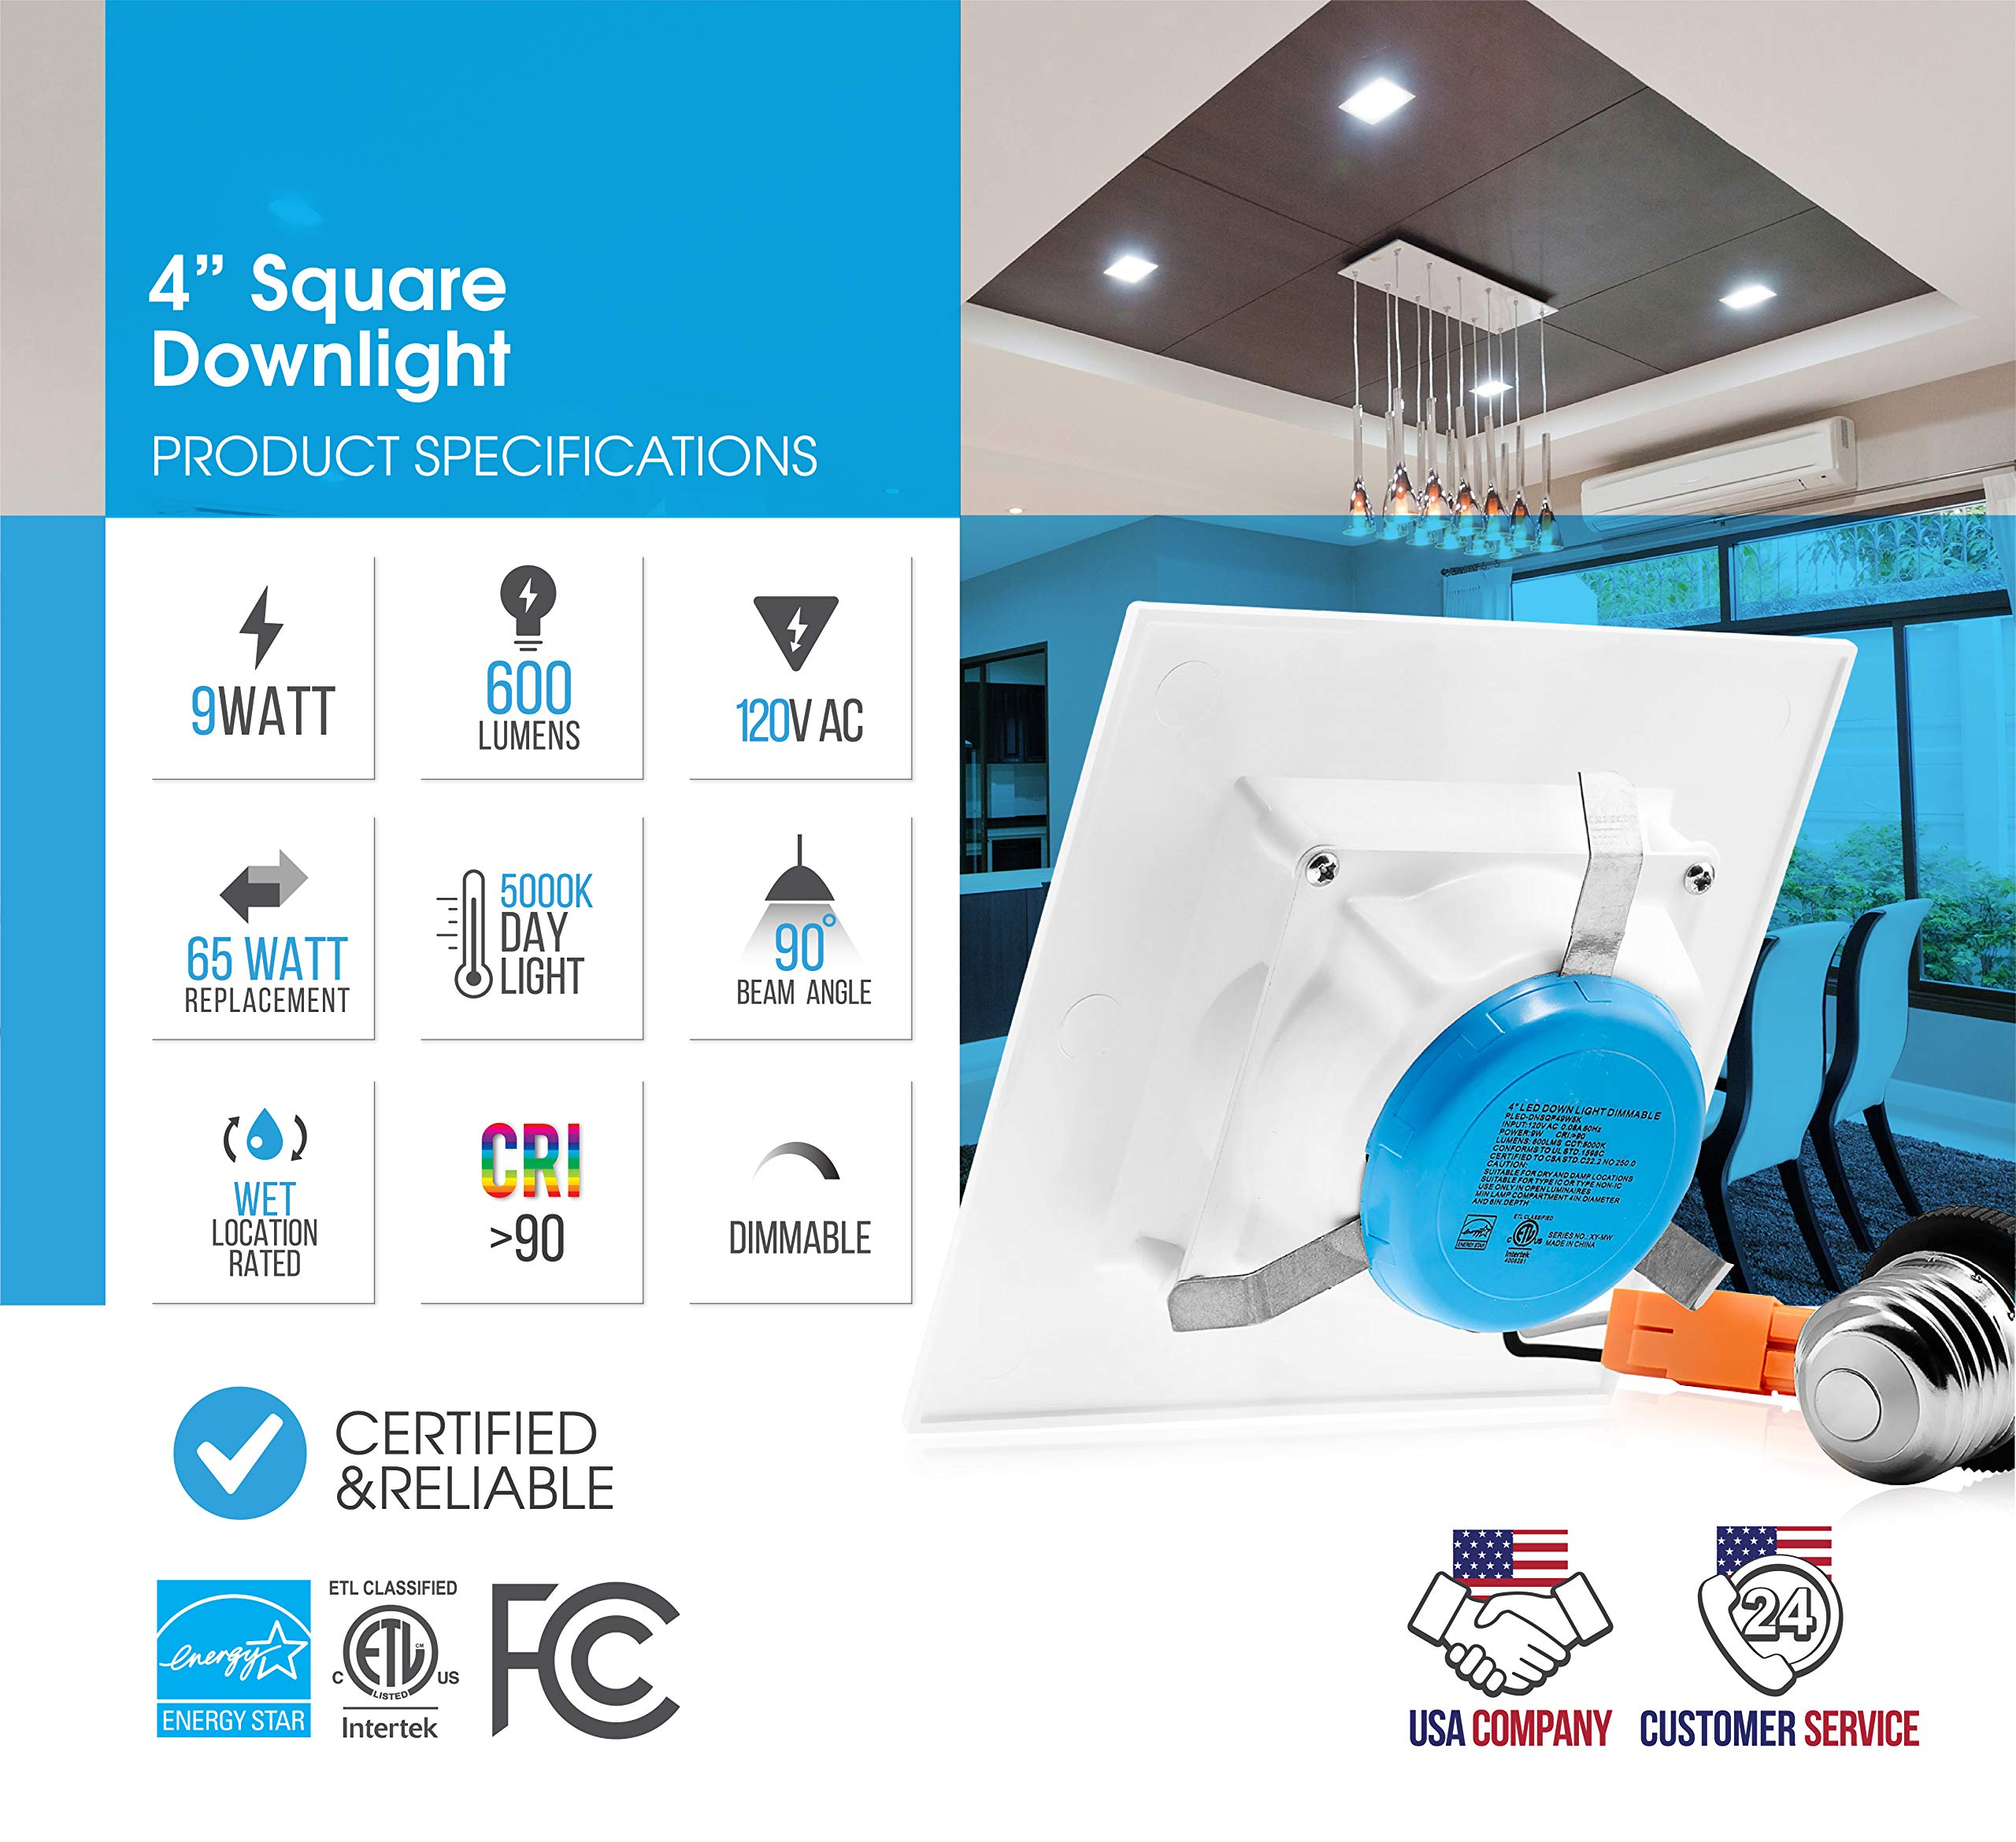 Parmida (12 Pack) 4 inch Dimmable LED Square Retrofit Recessed Downlight, 9W (65W Replacement), 600lm, 5000K (Day Light), Energy Star & ETL, LED Ceiling Can Light, LED Trim by Parmida LED Technologies (Image #3)